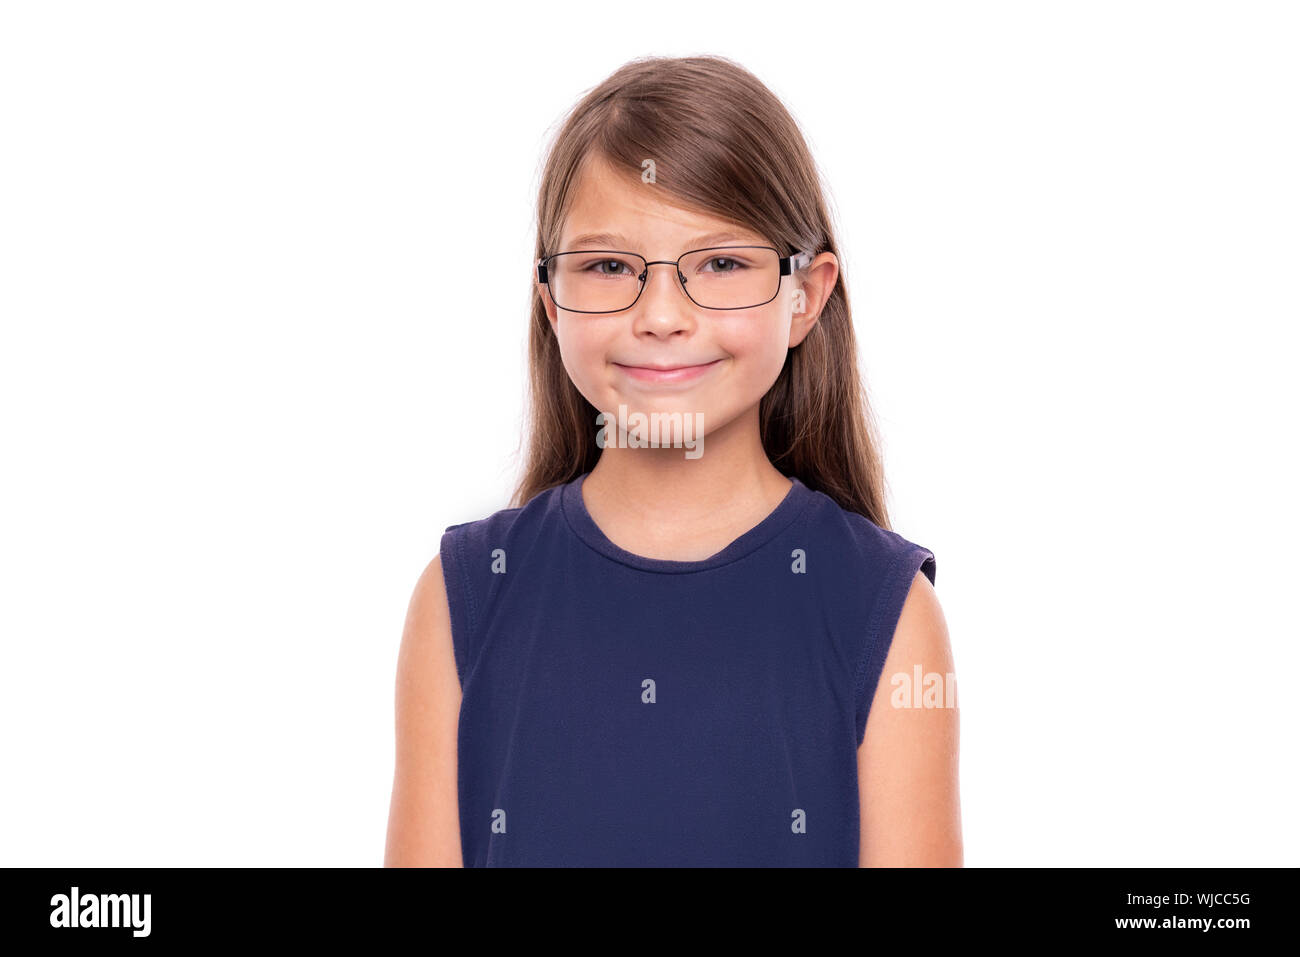 Portrait of a little girl with glasses isolated on white backgroud. Stock Photo